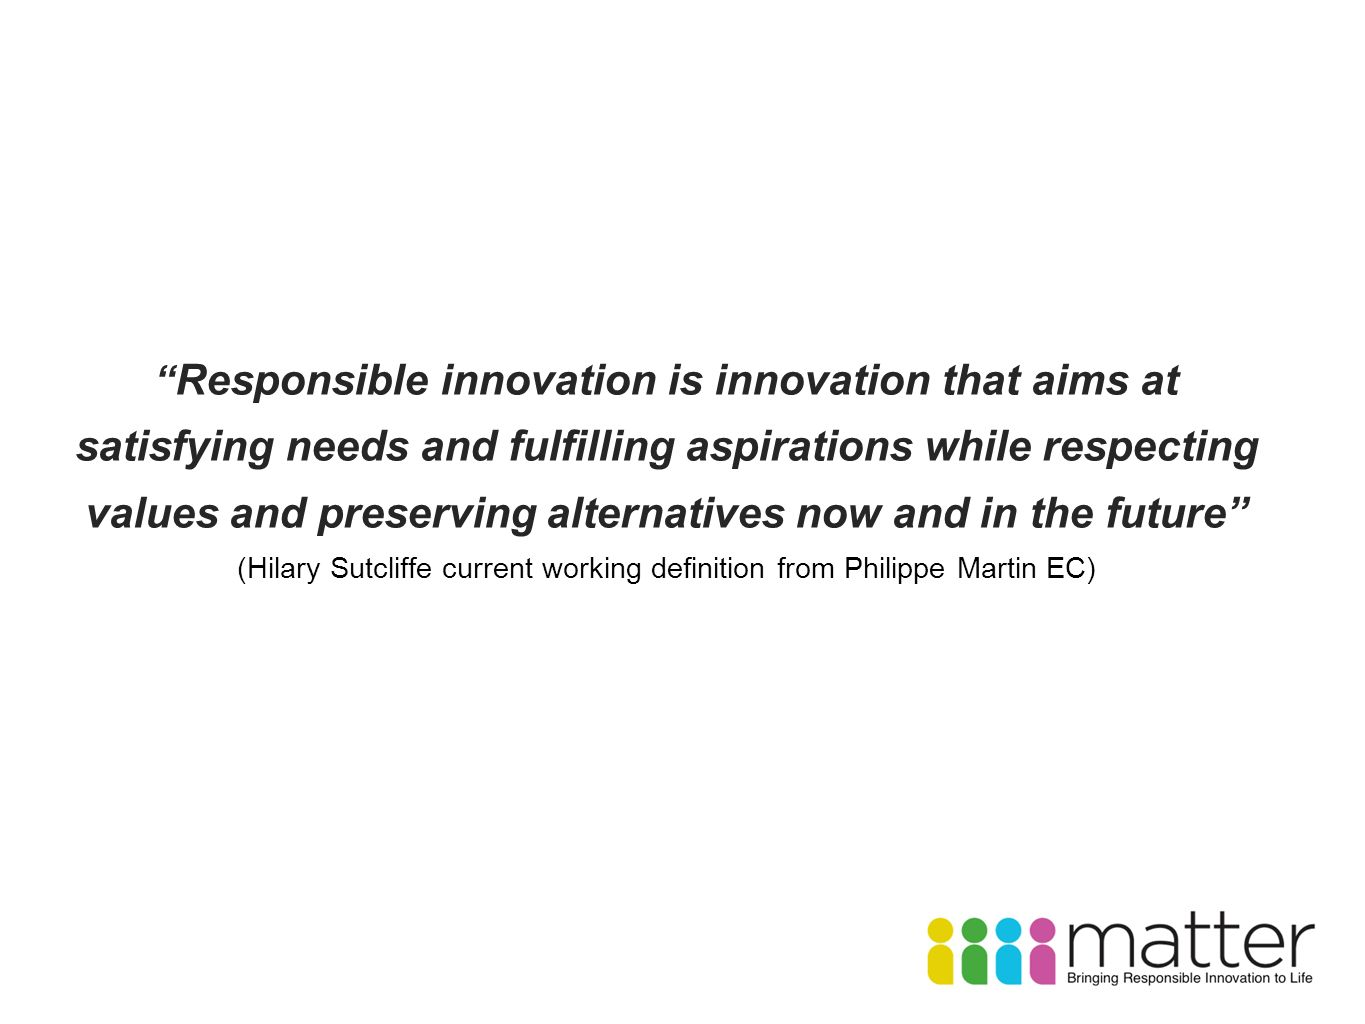 Responsible innovation is innovation that aims at satisfying needs and fulfilling aspirations while respecting values and preserving alternatives now and in the future (Hilary Sutcliffe current working definition from Philippe Martin EC)